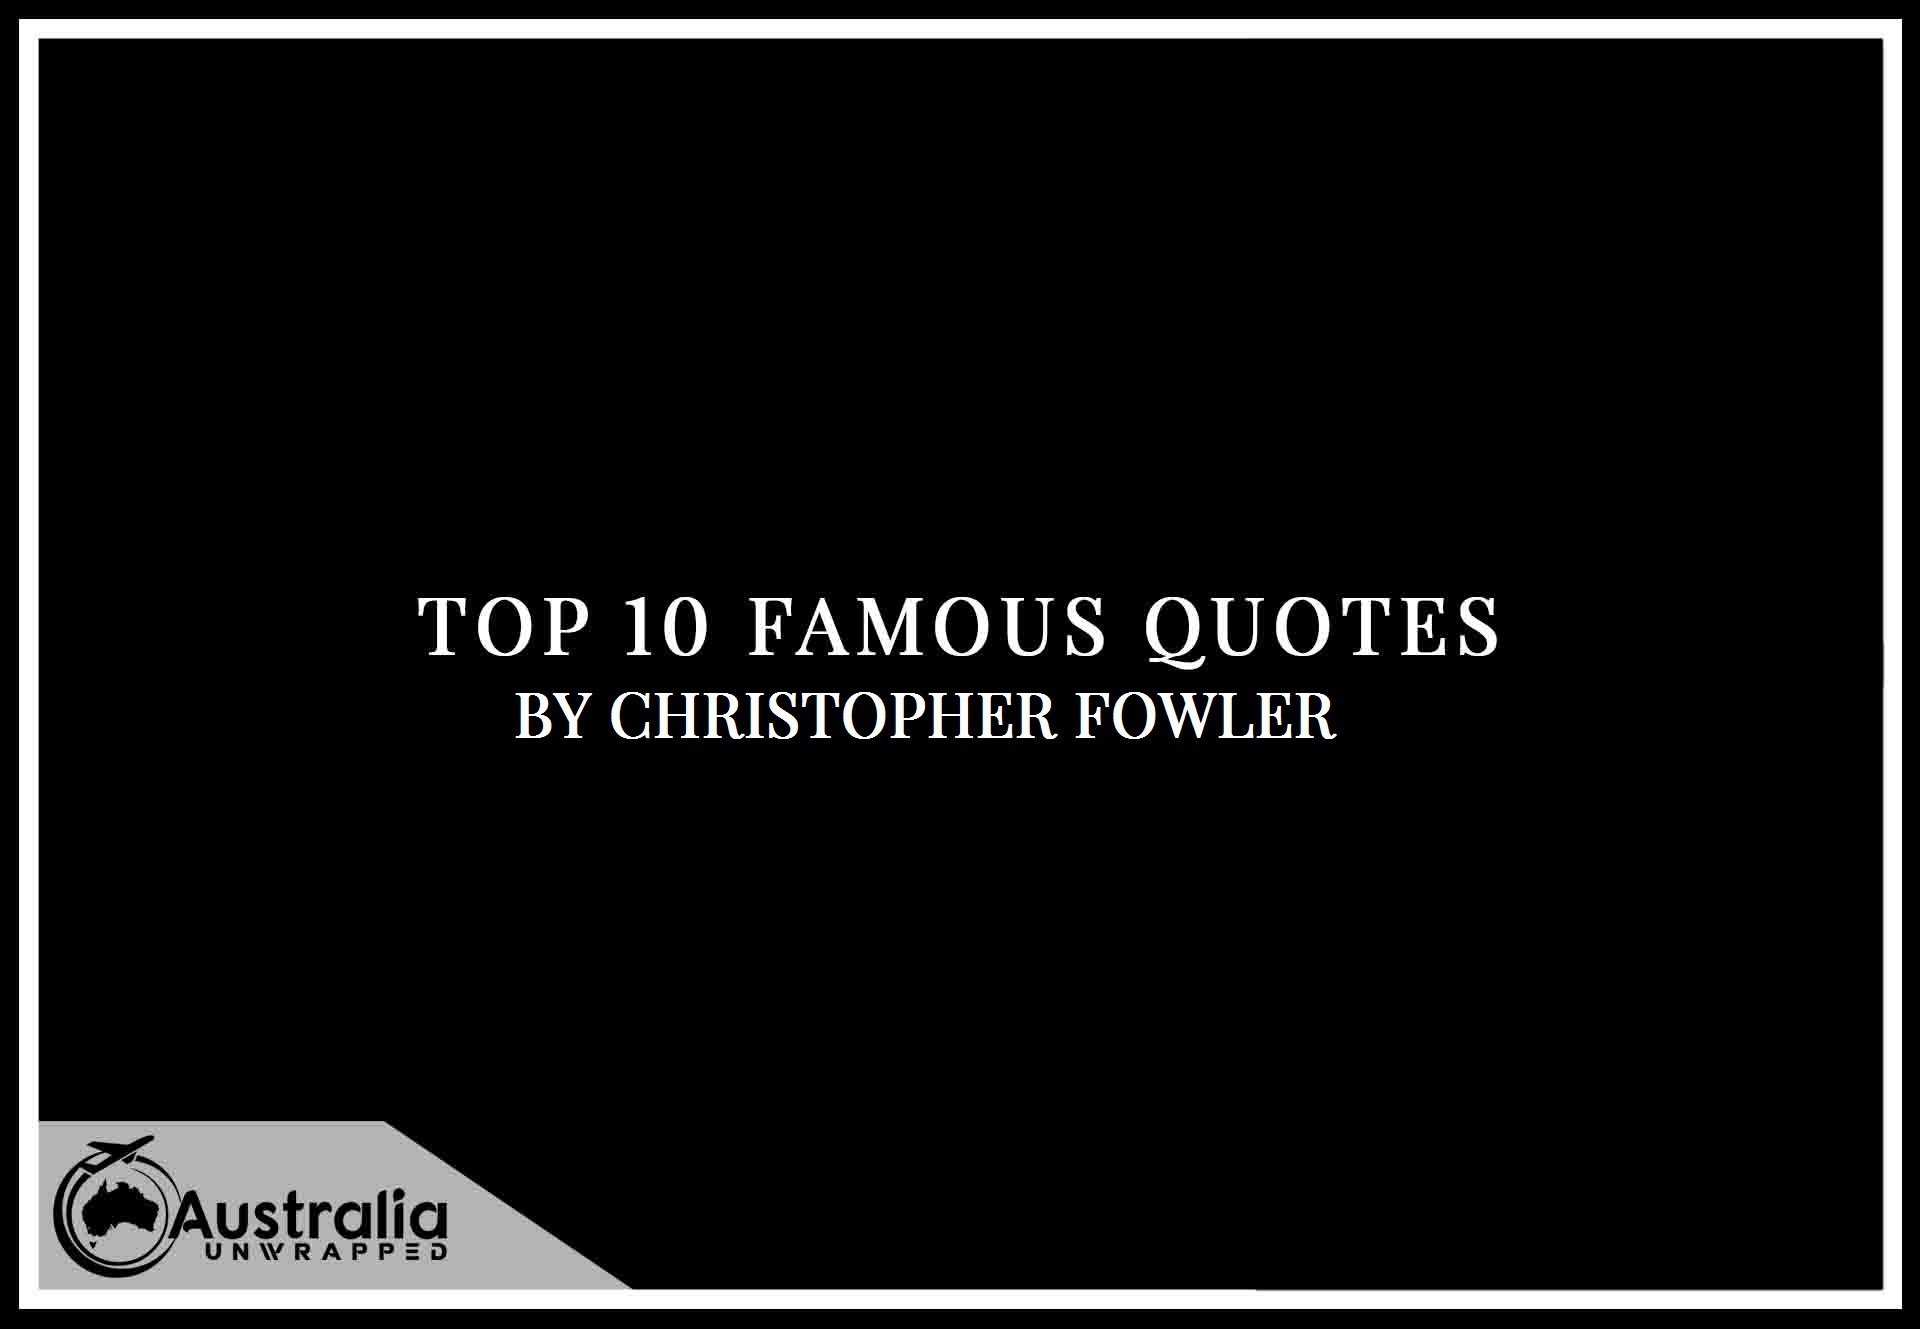 Christopher Fowler's Top 10 Popular and Famous Quotes